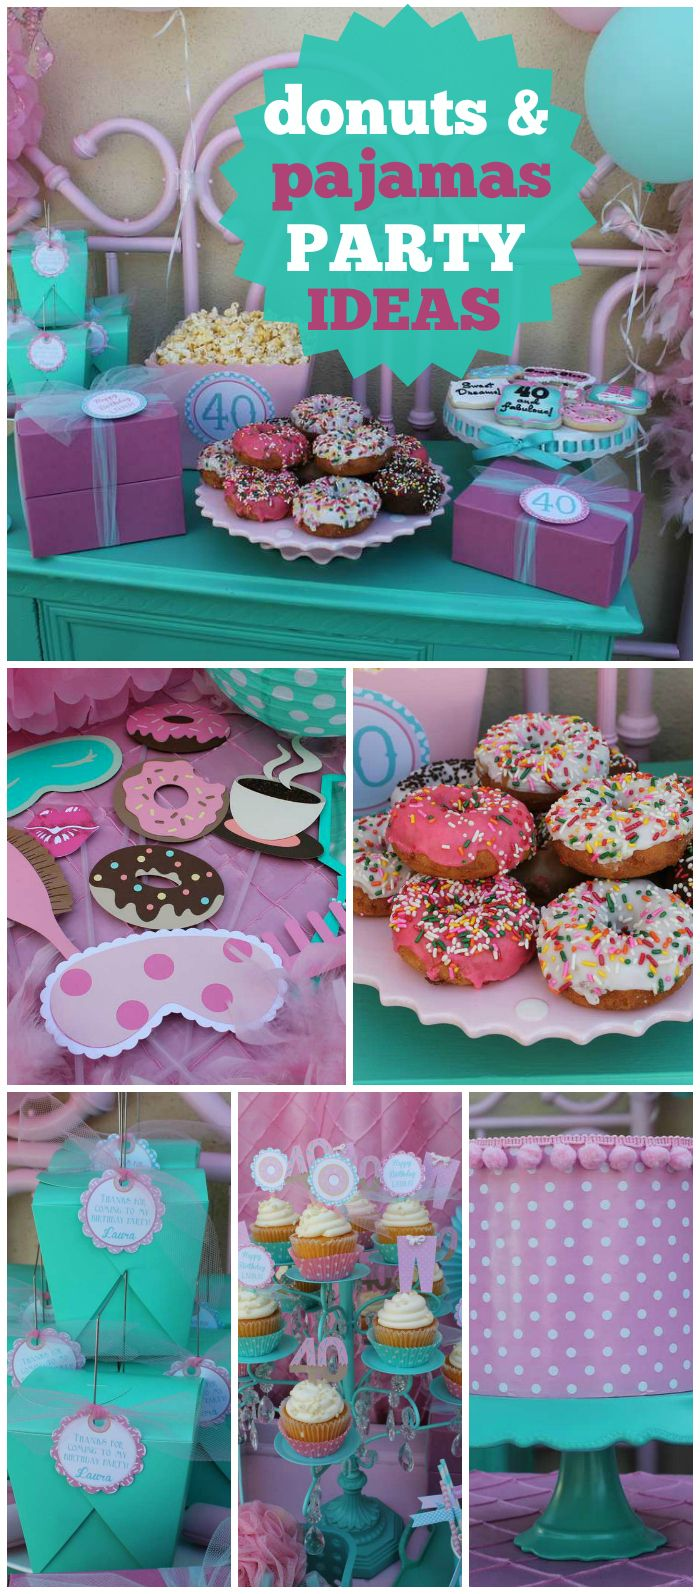 A donuts and pajamas 40th birthday party with sprinkled donuts, fun colors…